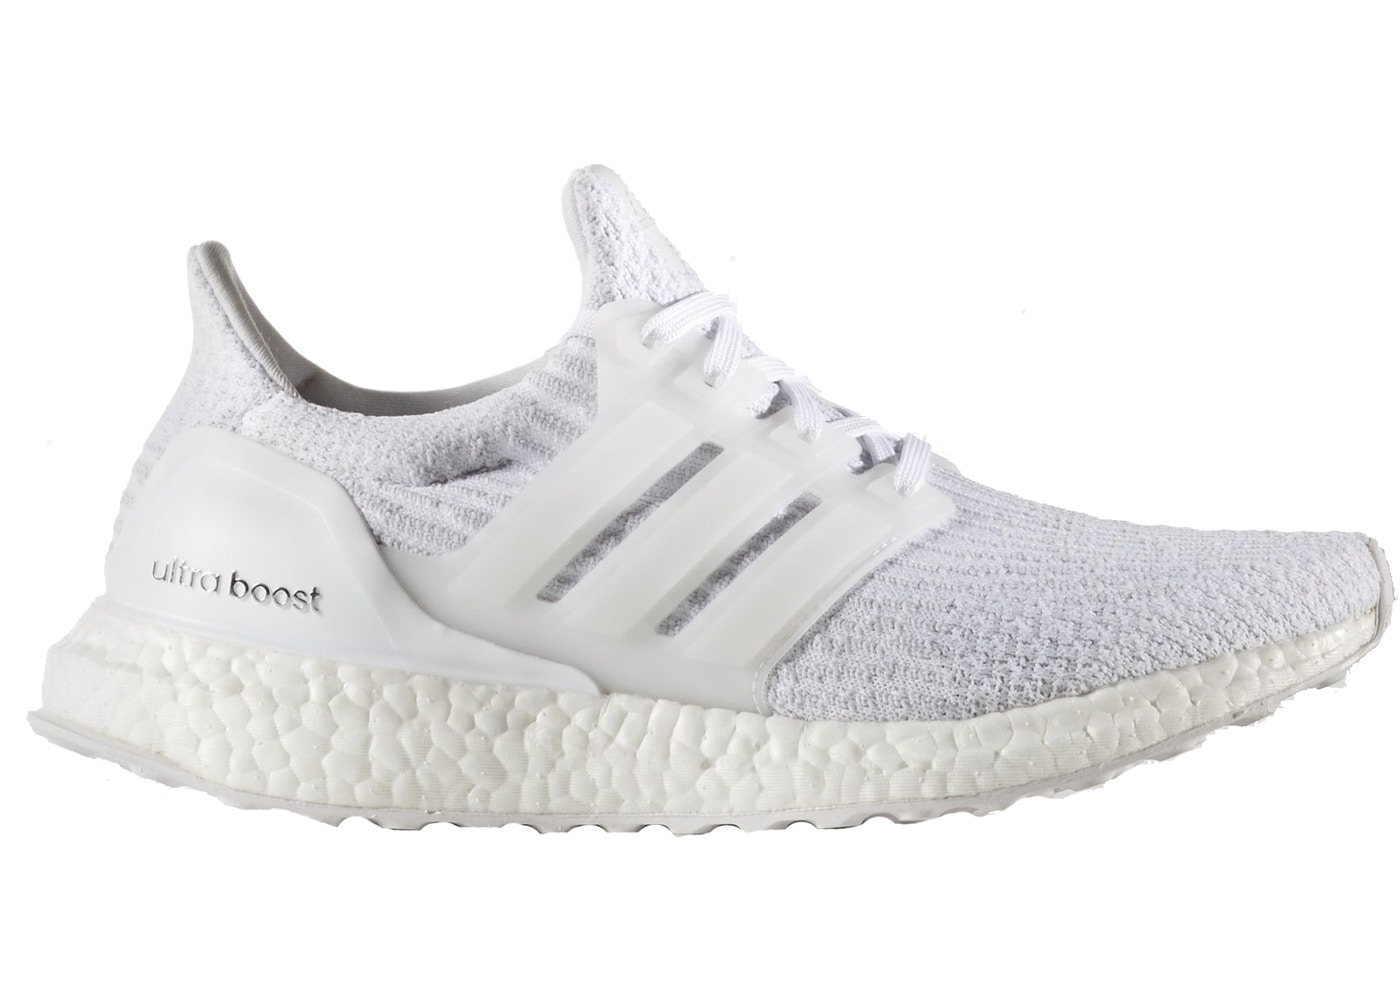 0666ae8a9dfd3 adidas Ultra Boost 3.0 Triple White (W) - BA7686